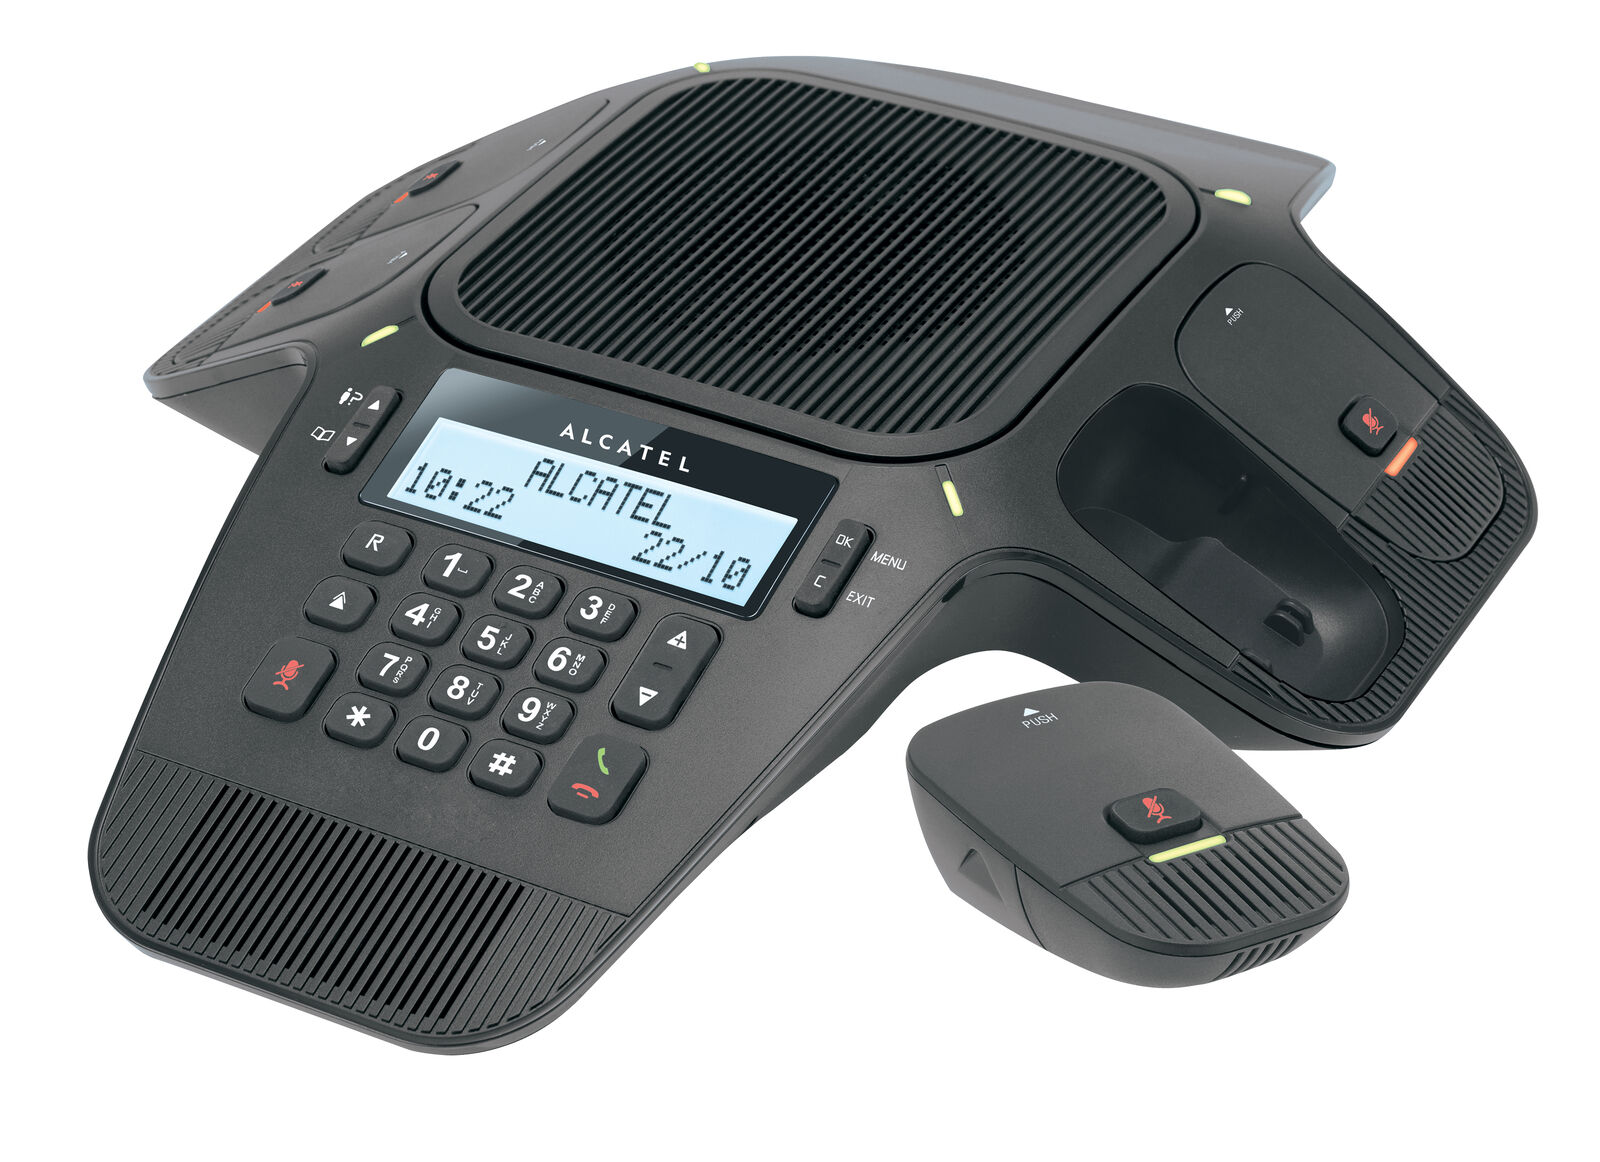 Alcatel Conference 1800 telefoon